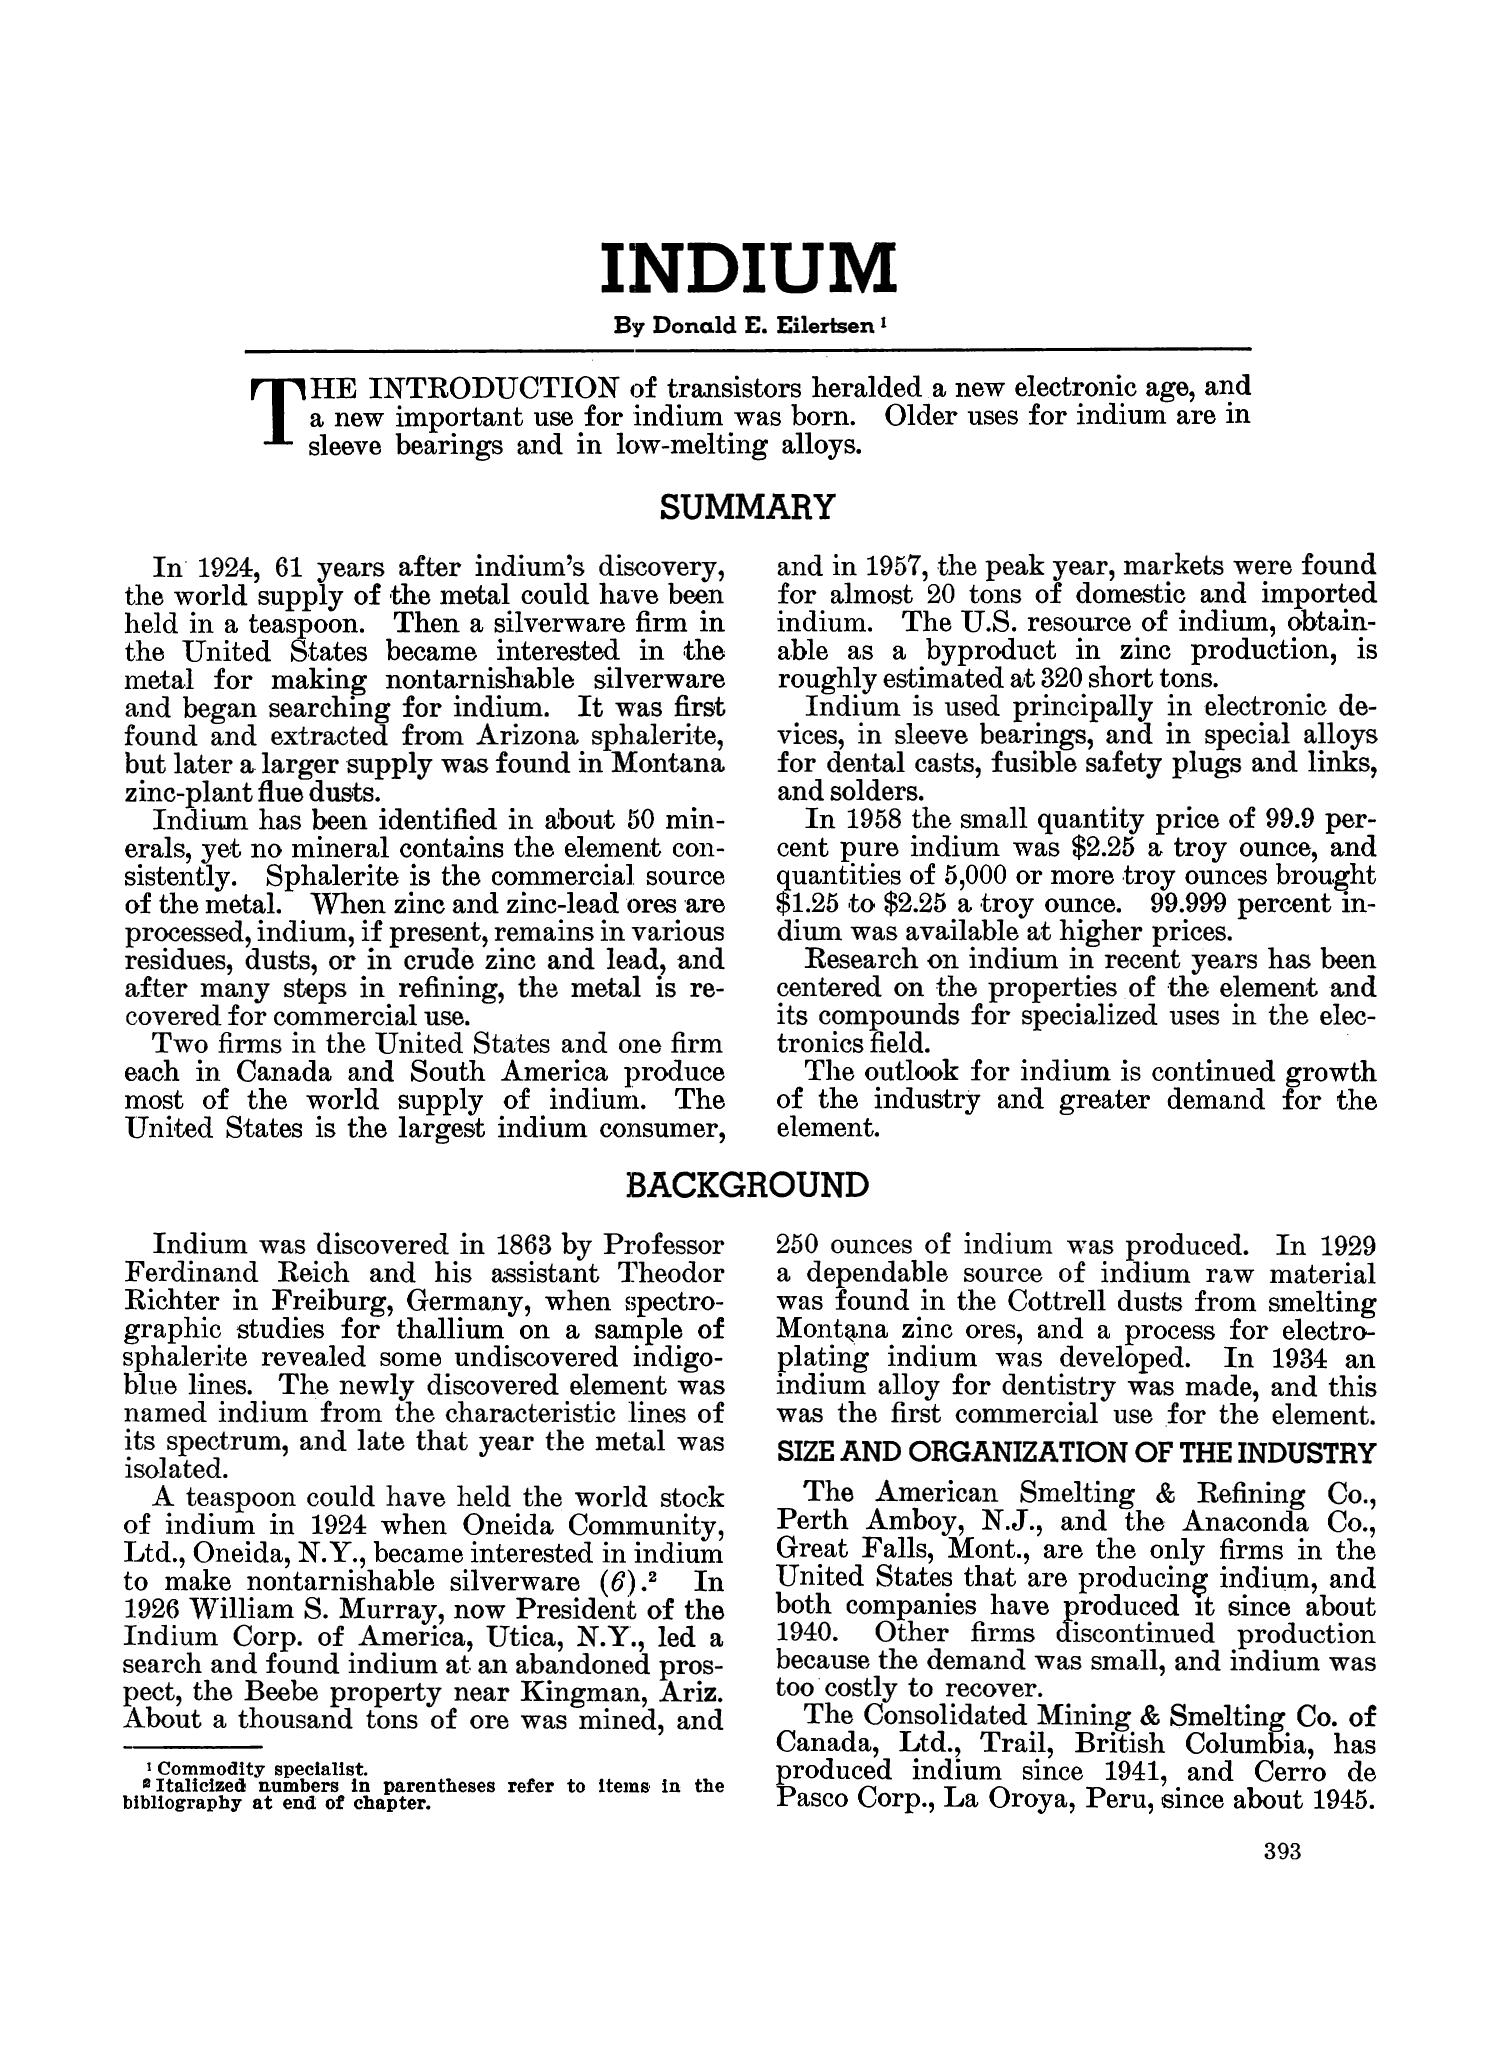 Mineral Facts and Problems: 1960 Edition                                                                                                      393